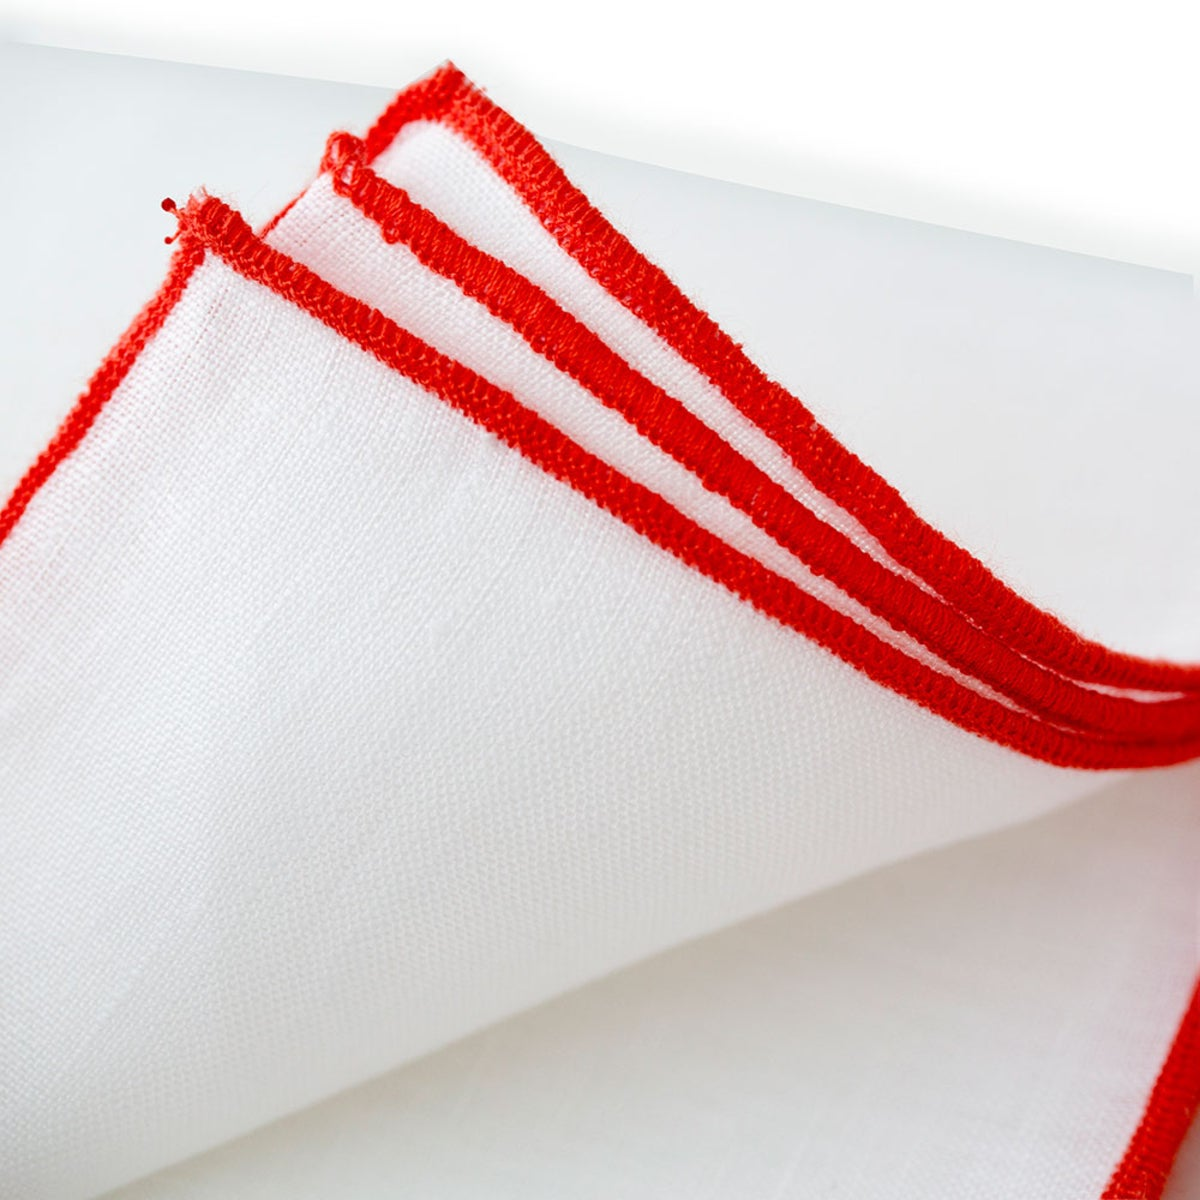 100% Pure Linen Runner - Coral Stitch